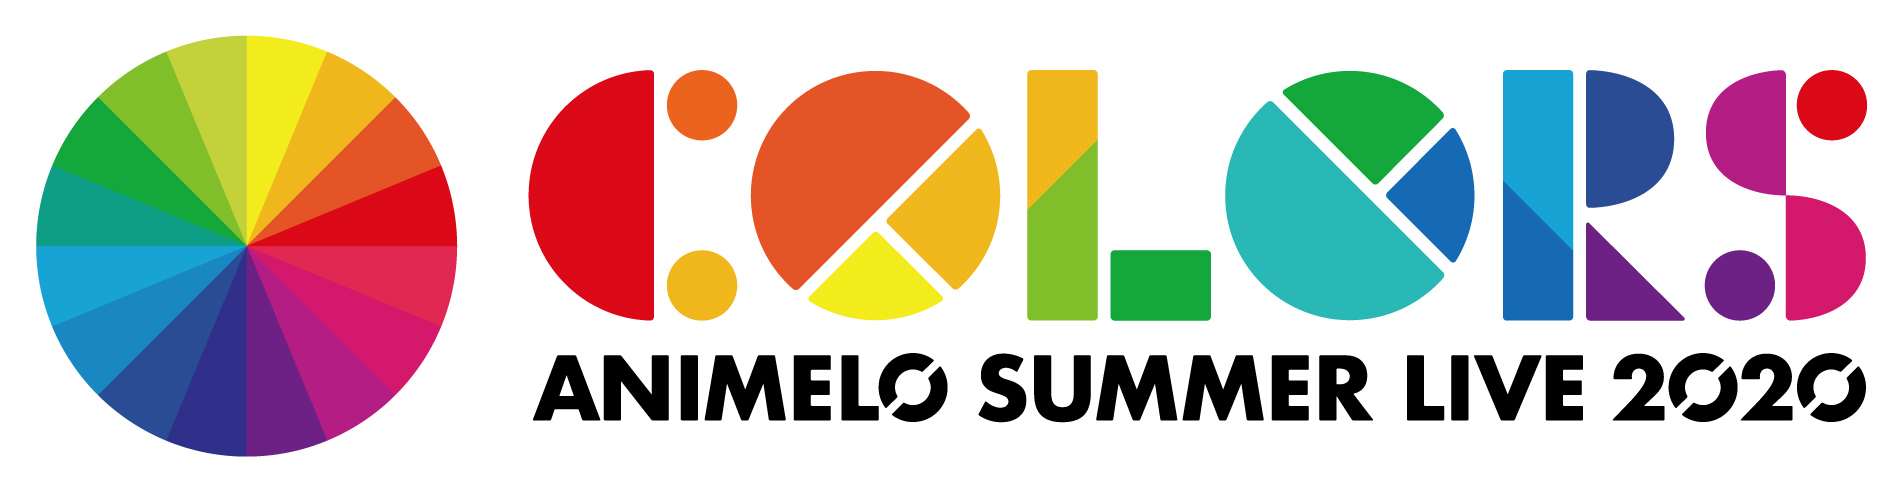 『Animelo Summer Live 2020 -COLORS-』ロゴ